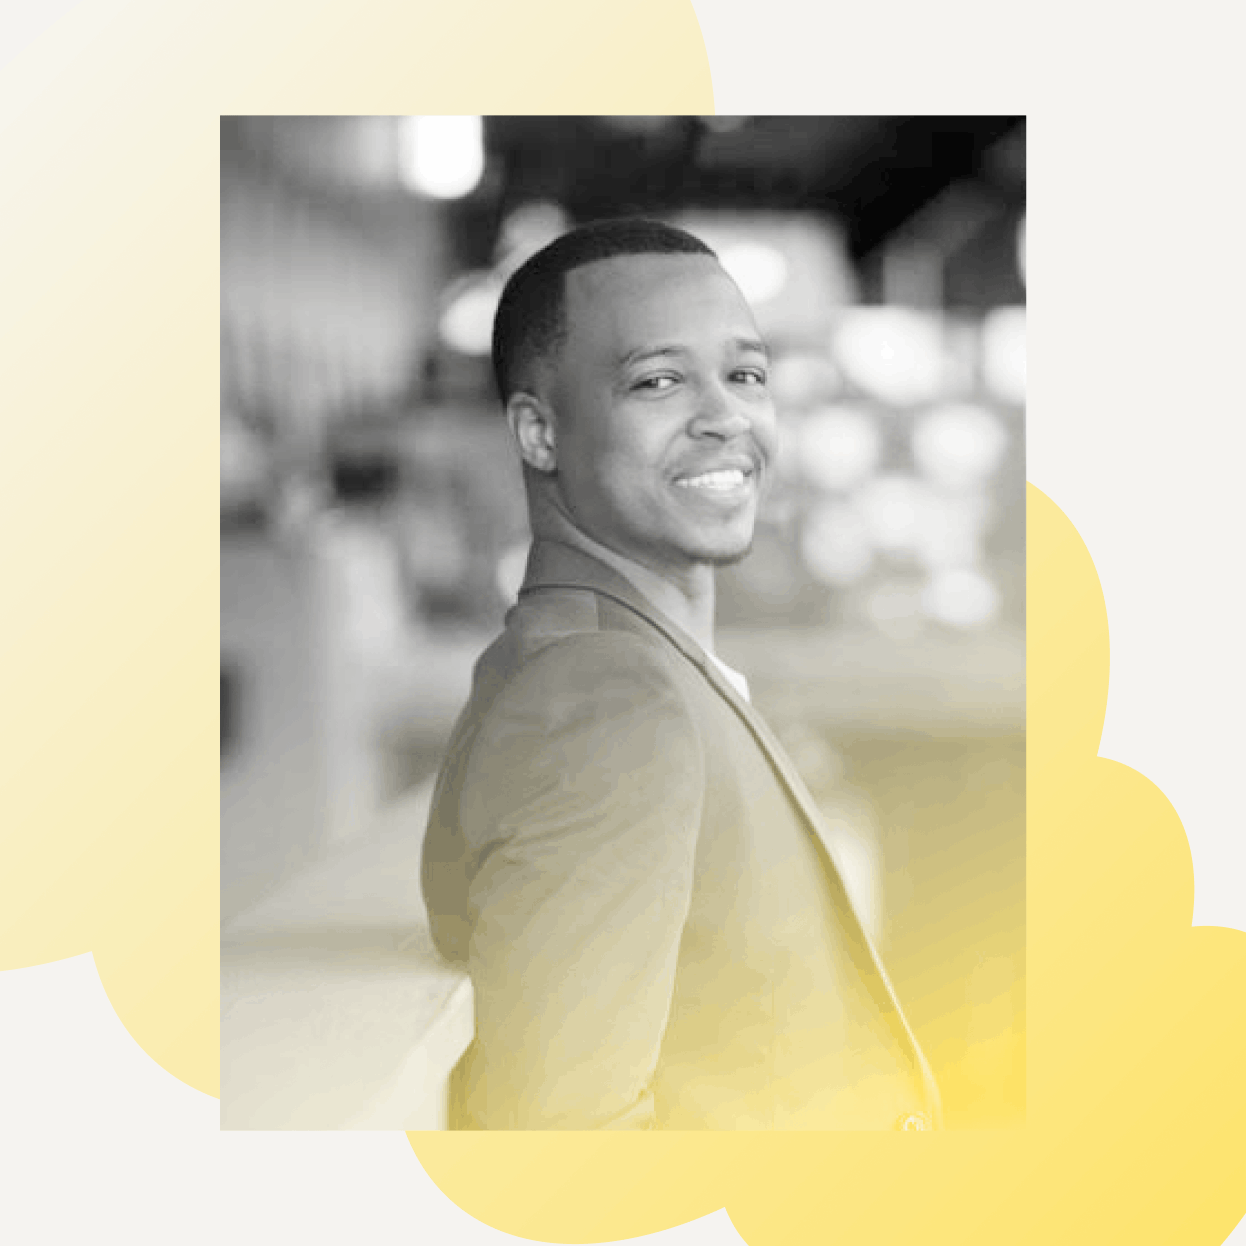 Khalif El-Amin teaches new founders about self-care